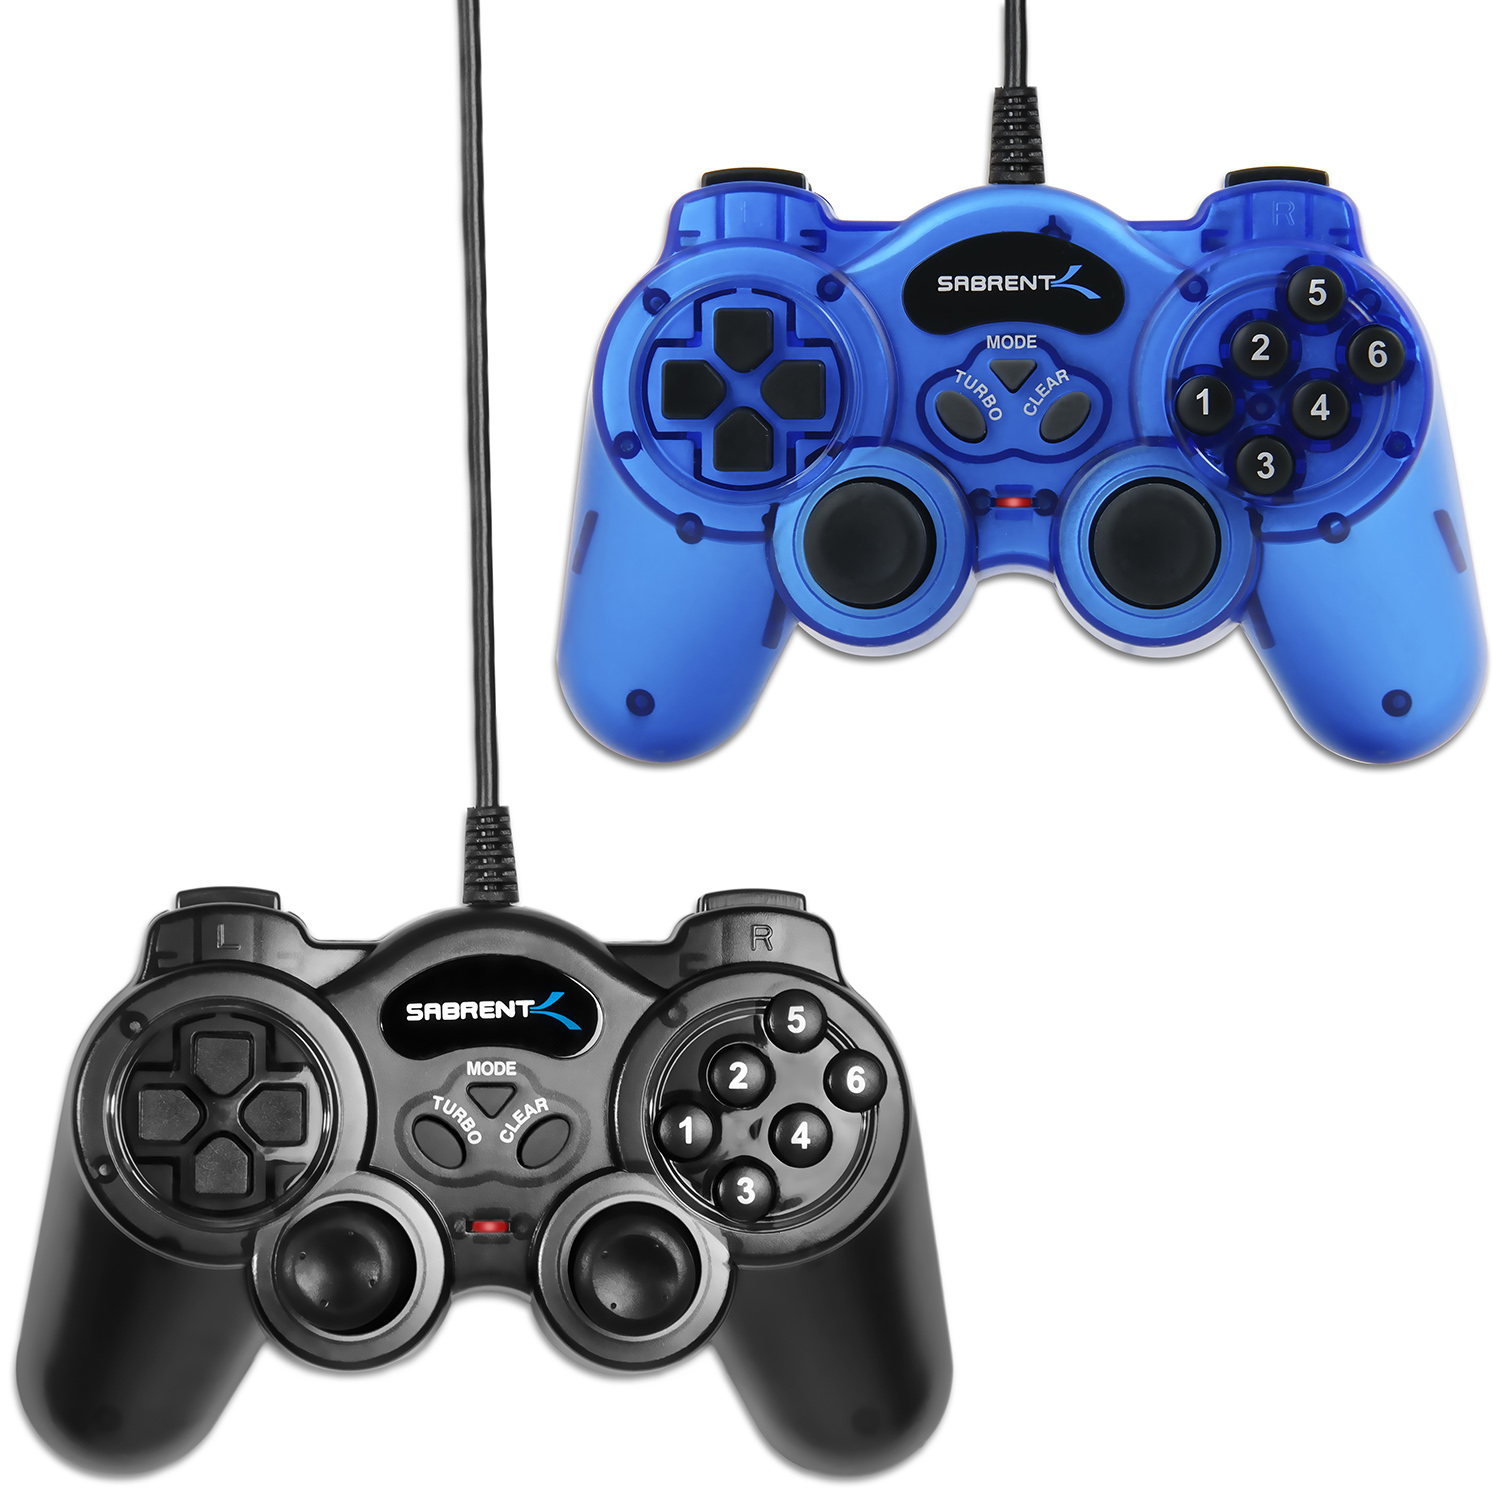 Sabrent 12 Button Programmable USB 2.0 Game Controller For PC - 2 Pack